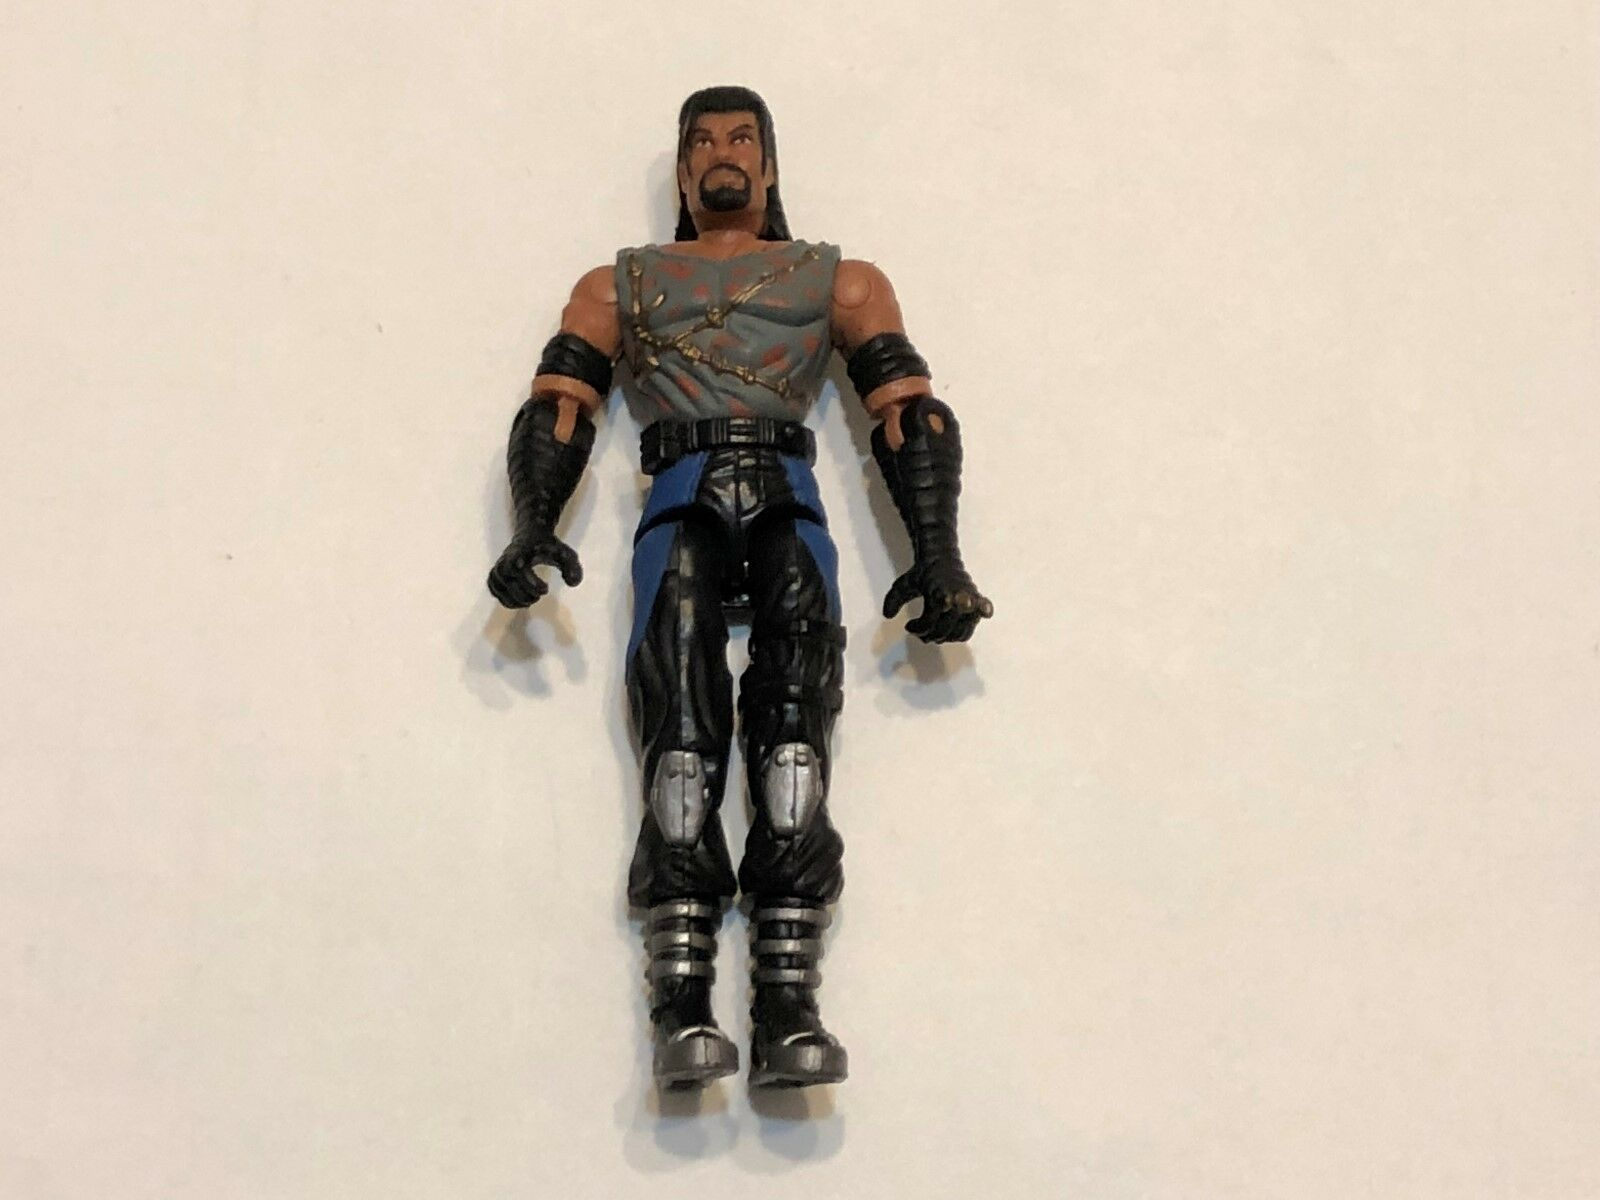 2003 Hasbro G.I. Joe Burnout Action Figure (Ref # 41-06)